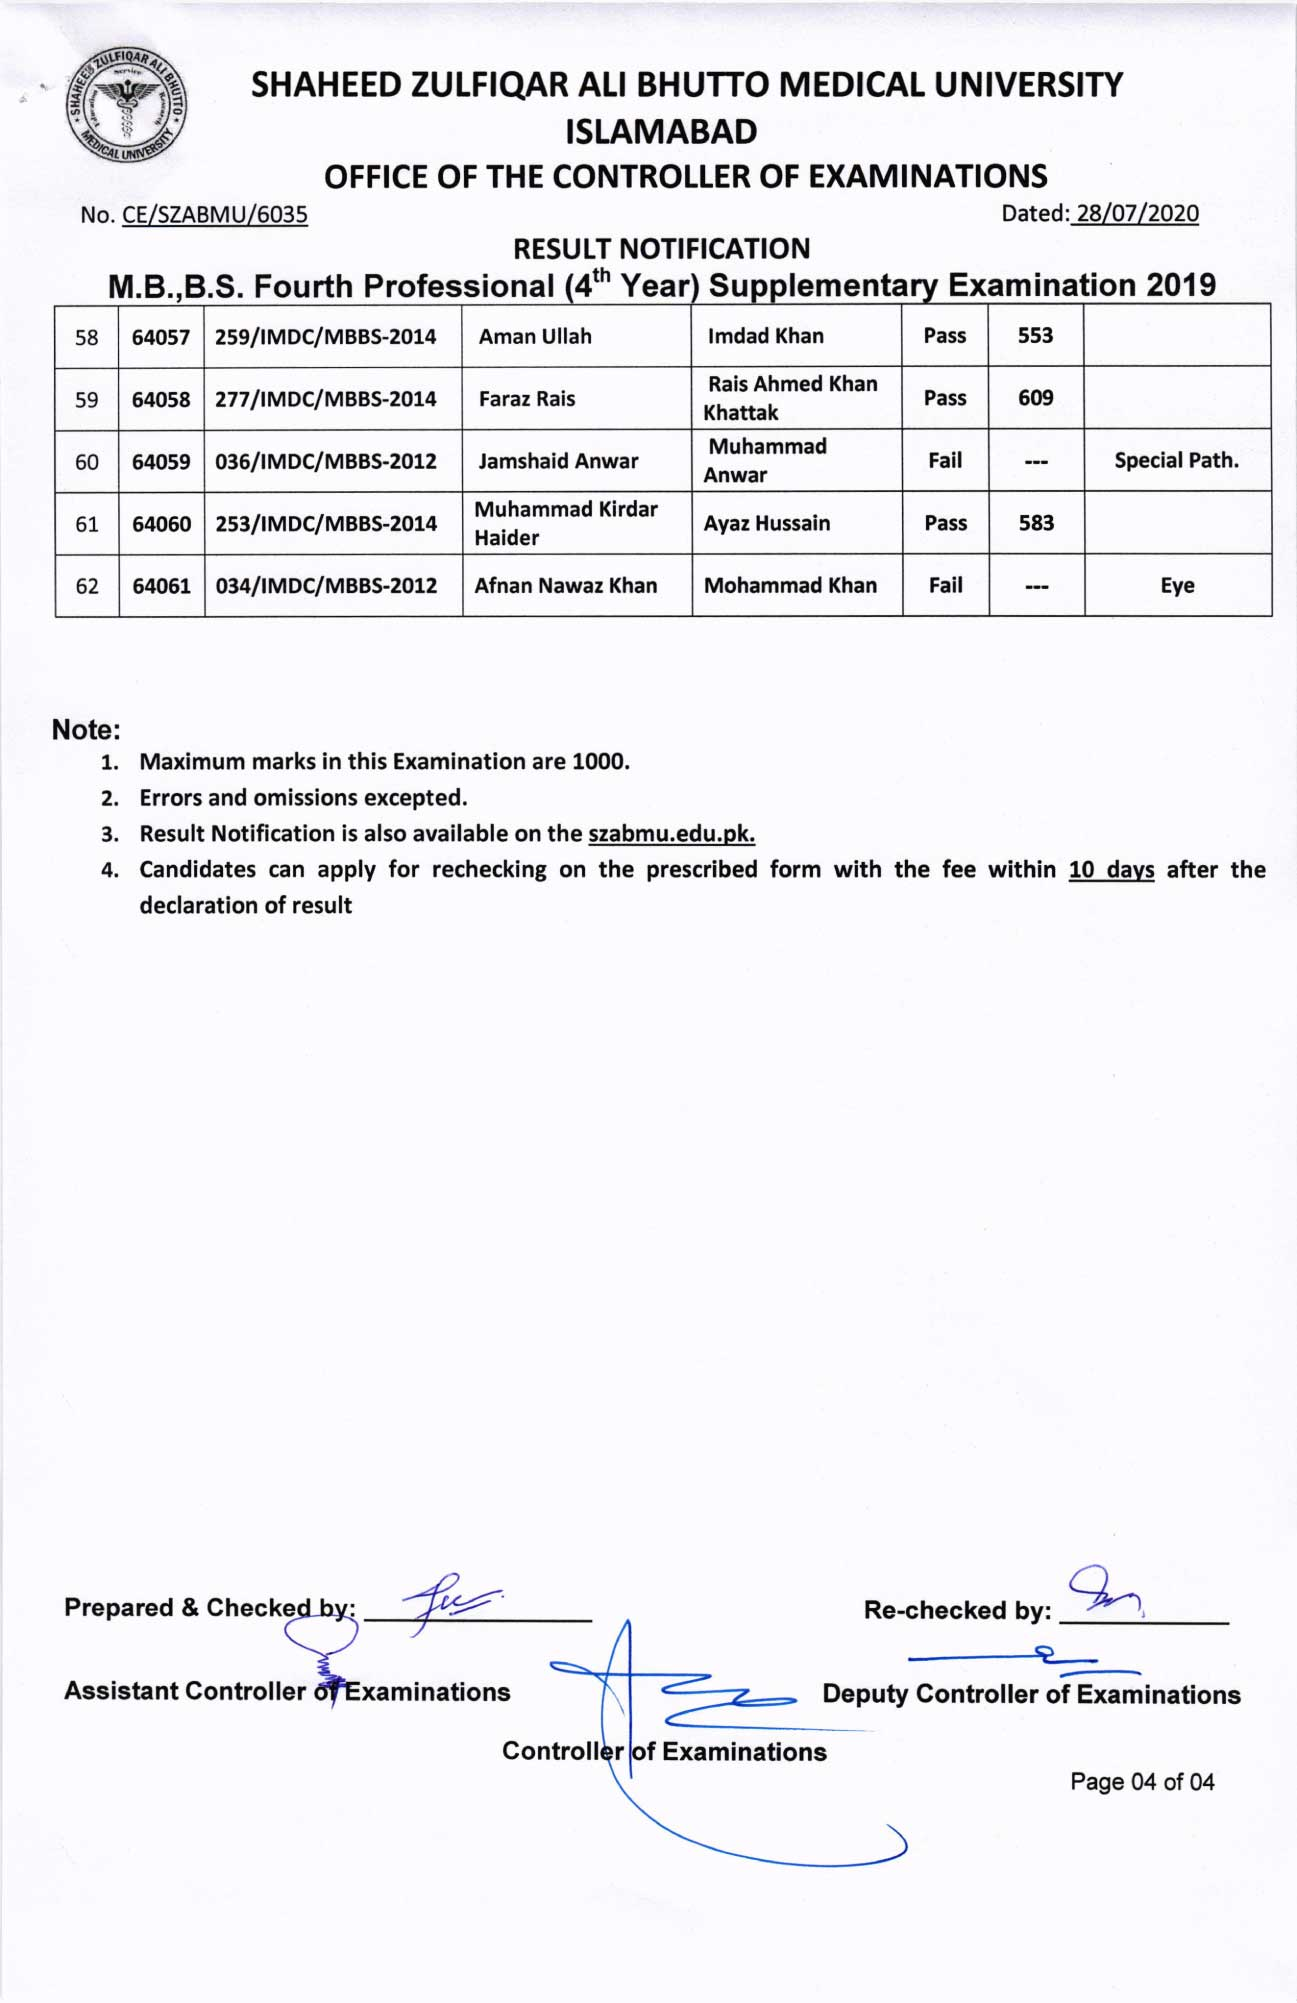 Result Notification of MBBS 4th Professional Supplementary Examination 2019